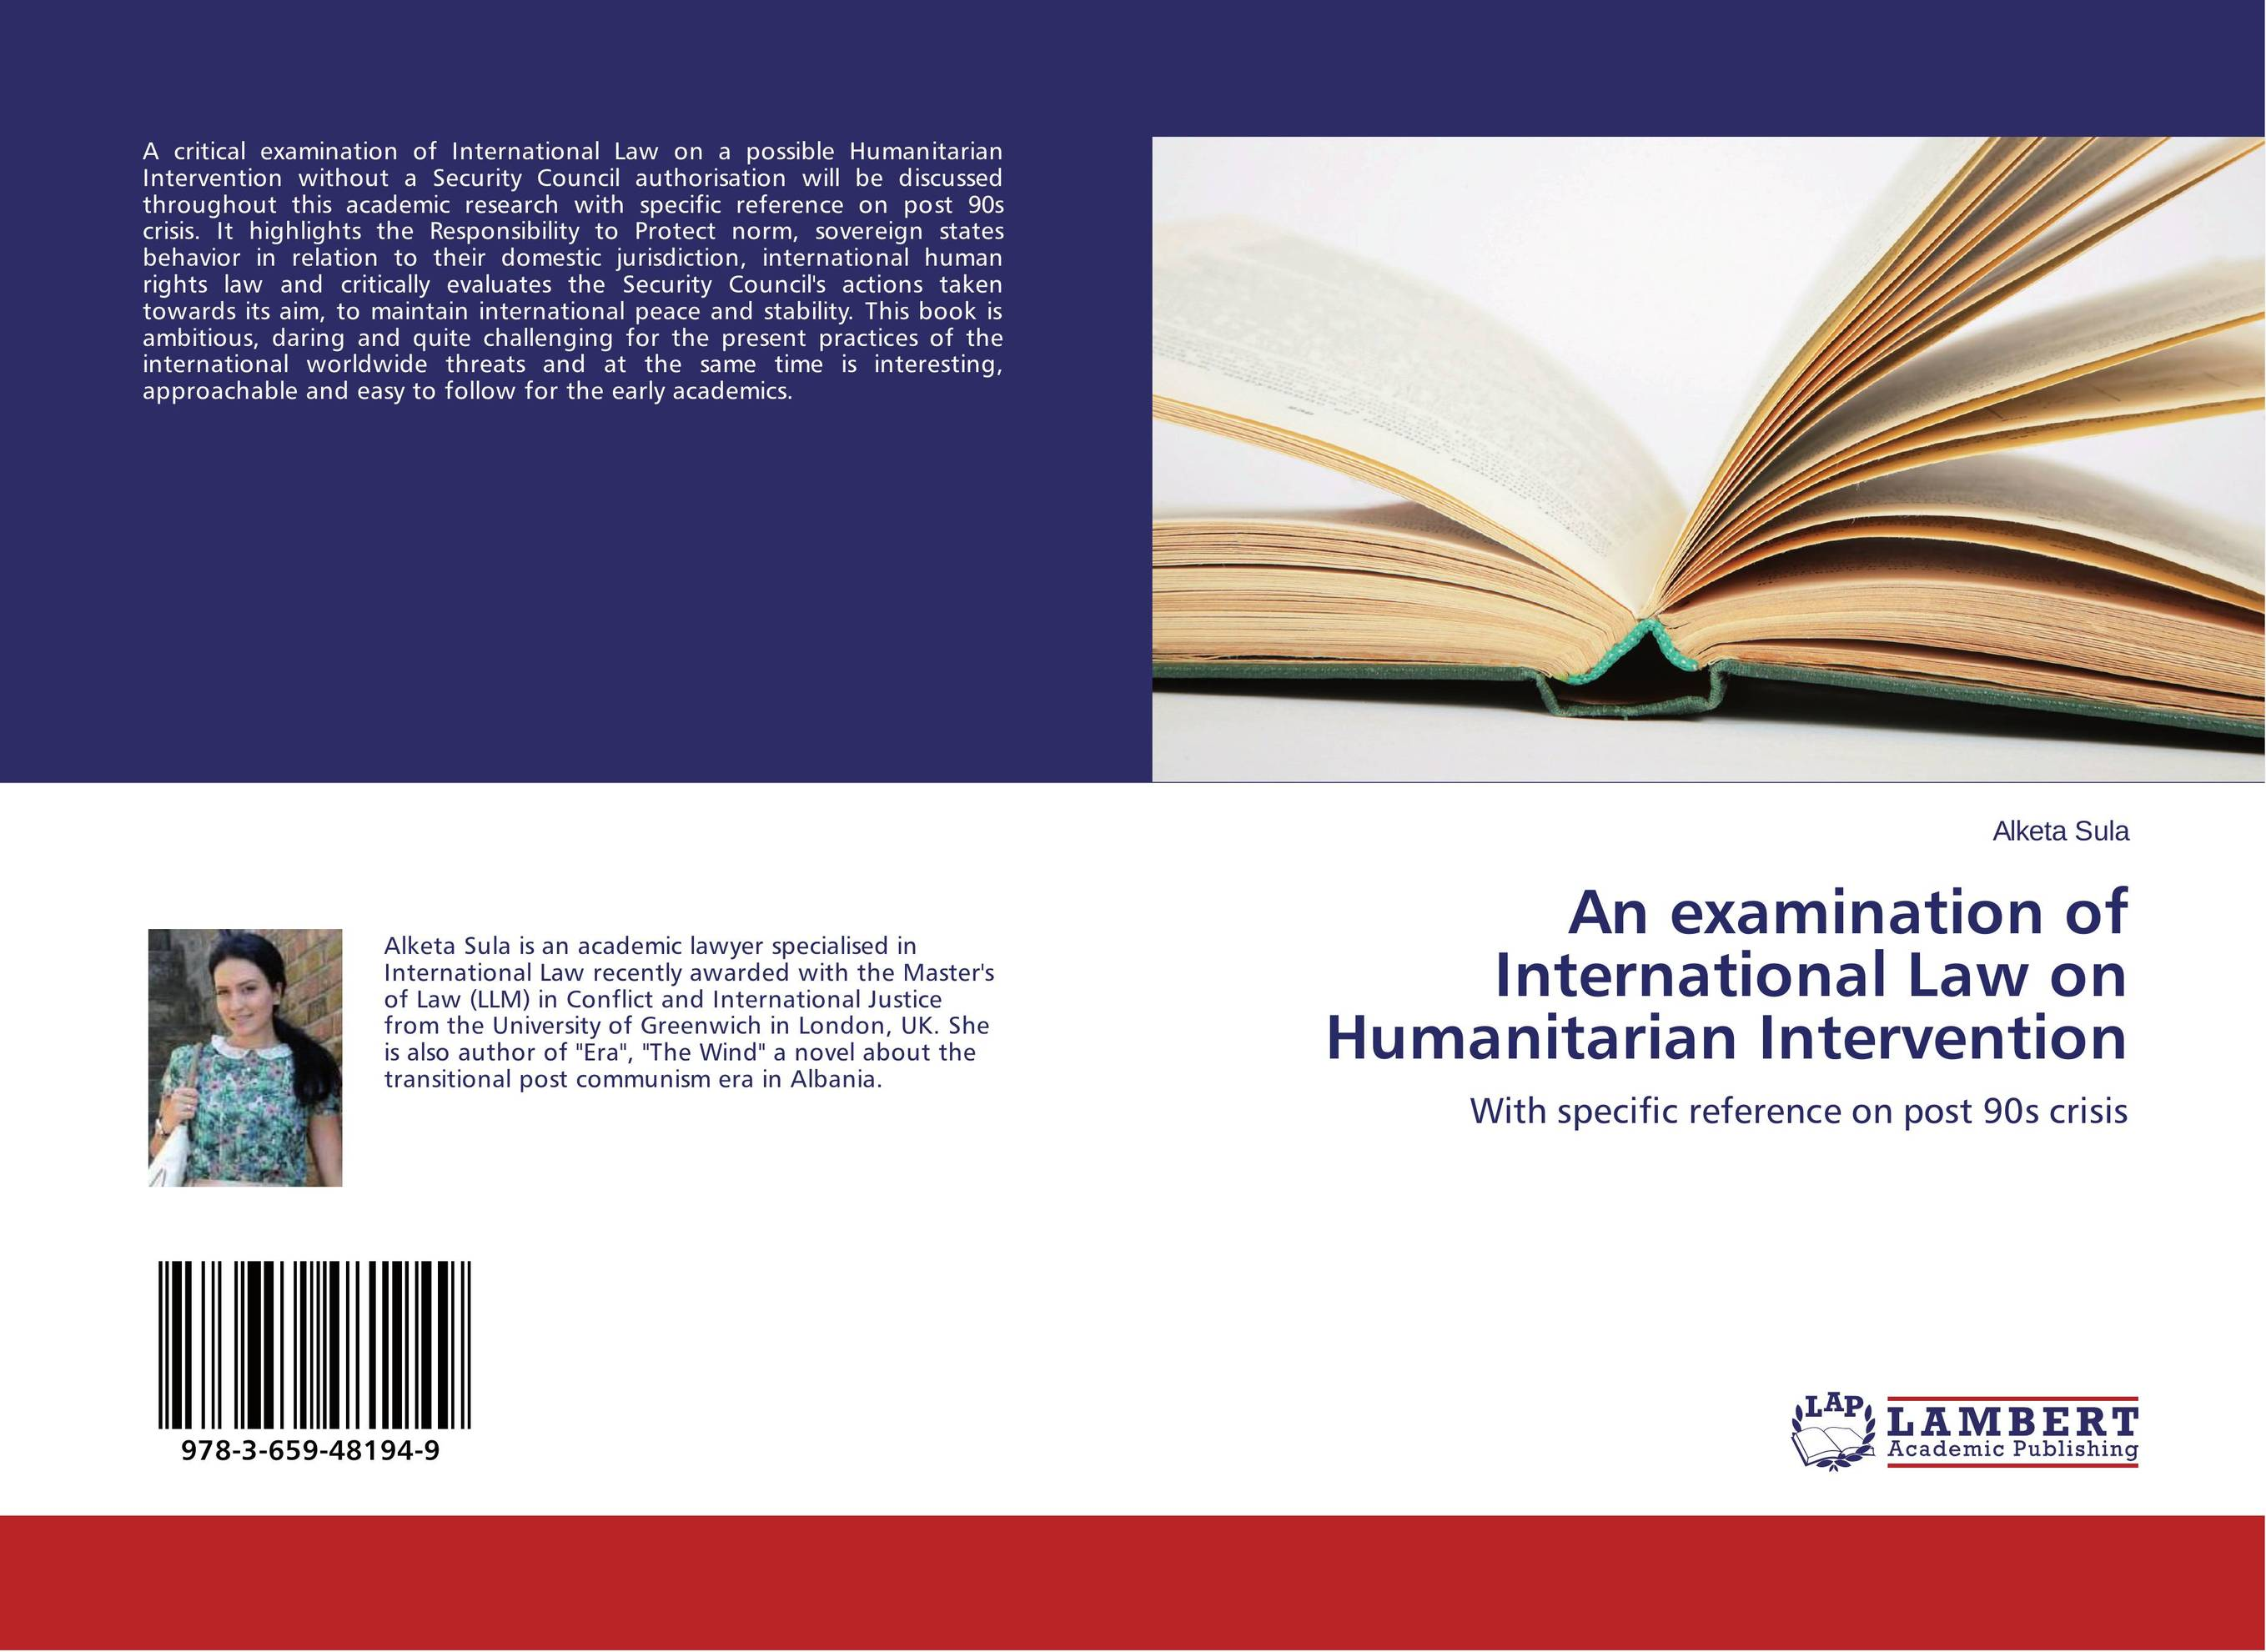 An examination of International Law on Humanitarian Intervention oliver ramsbotham humanitarian intervention in contemporary conflict